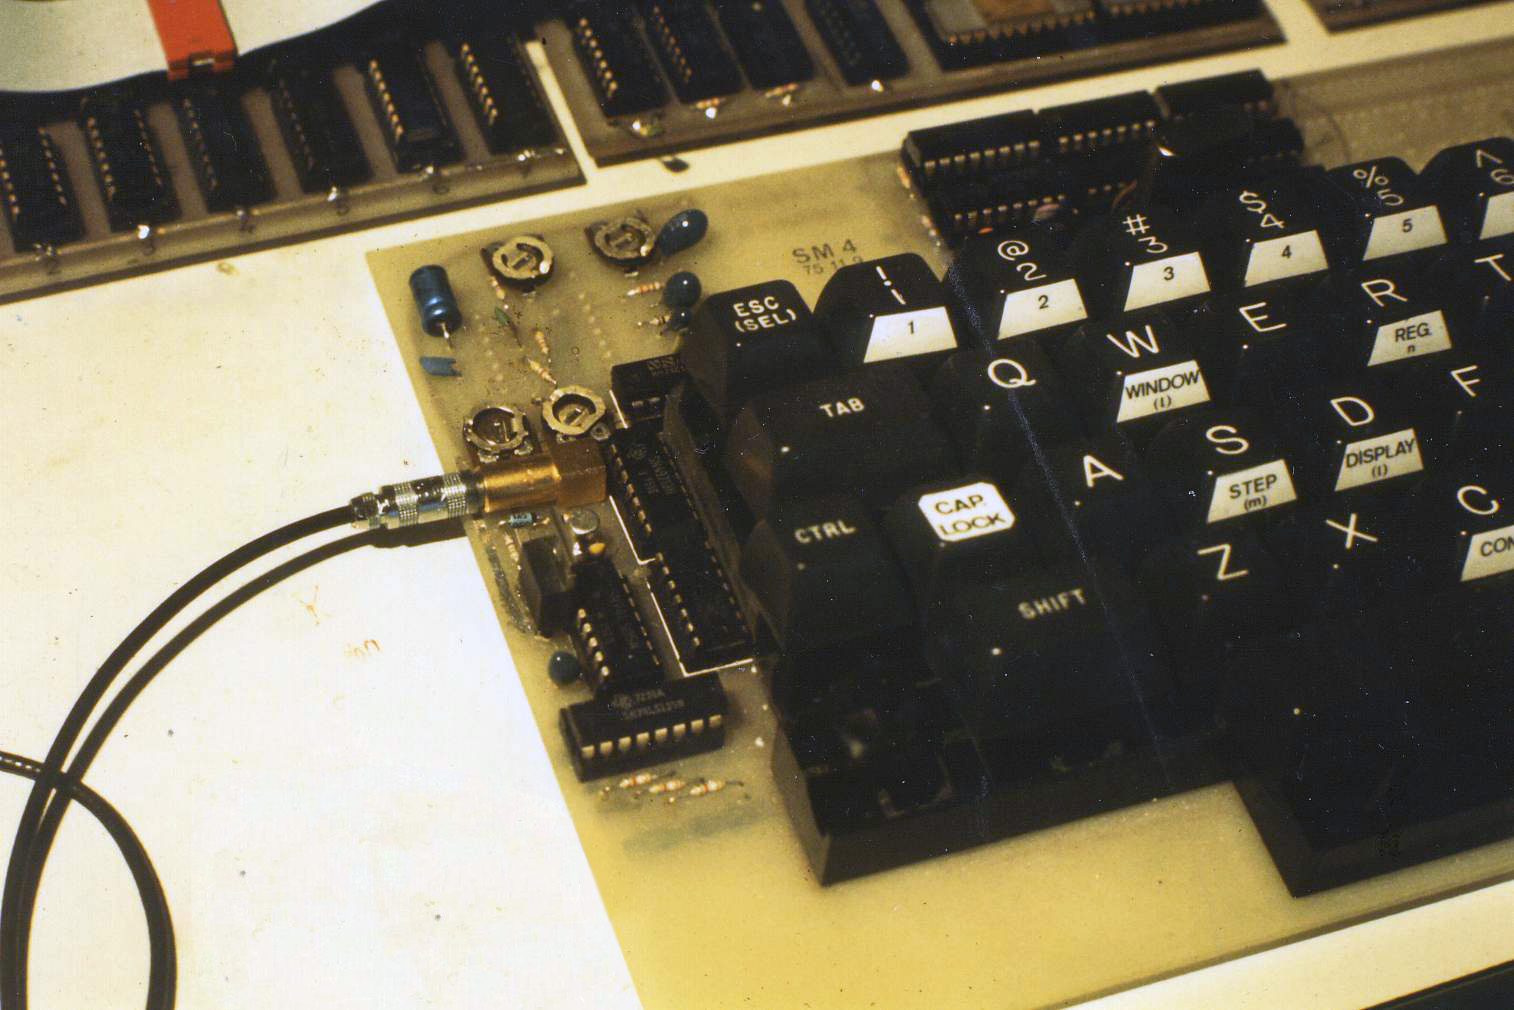 Smaky 4 keyboard with Cobus interface, from 1976